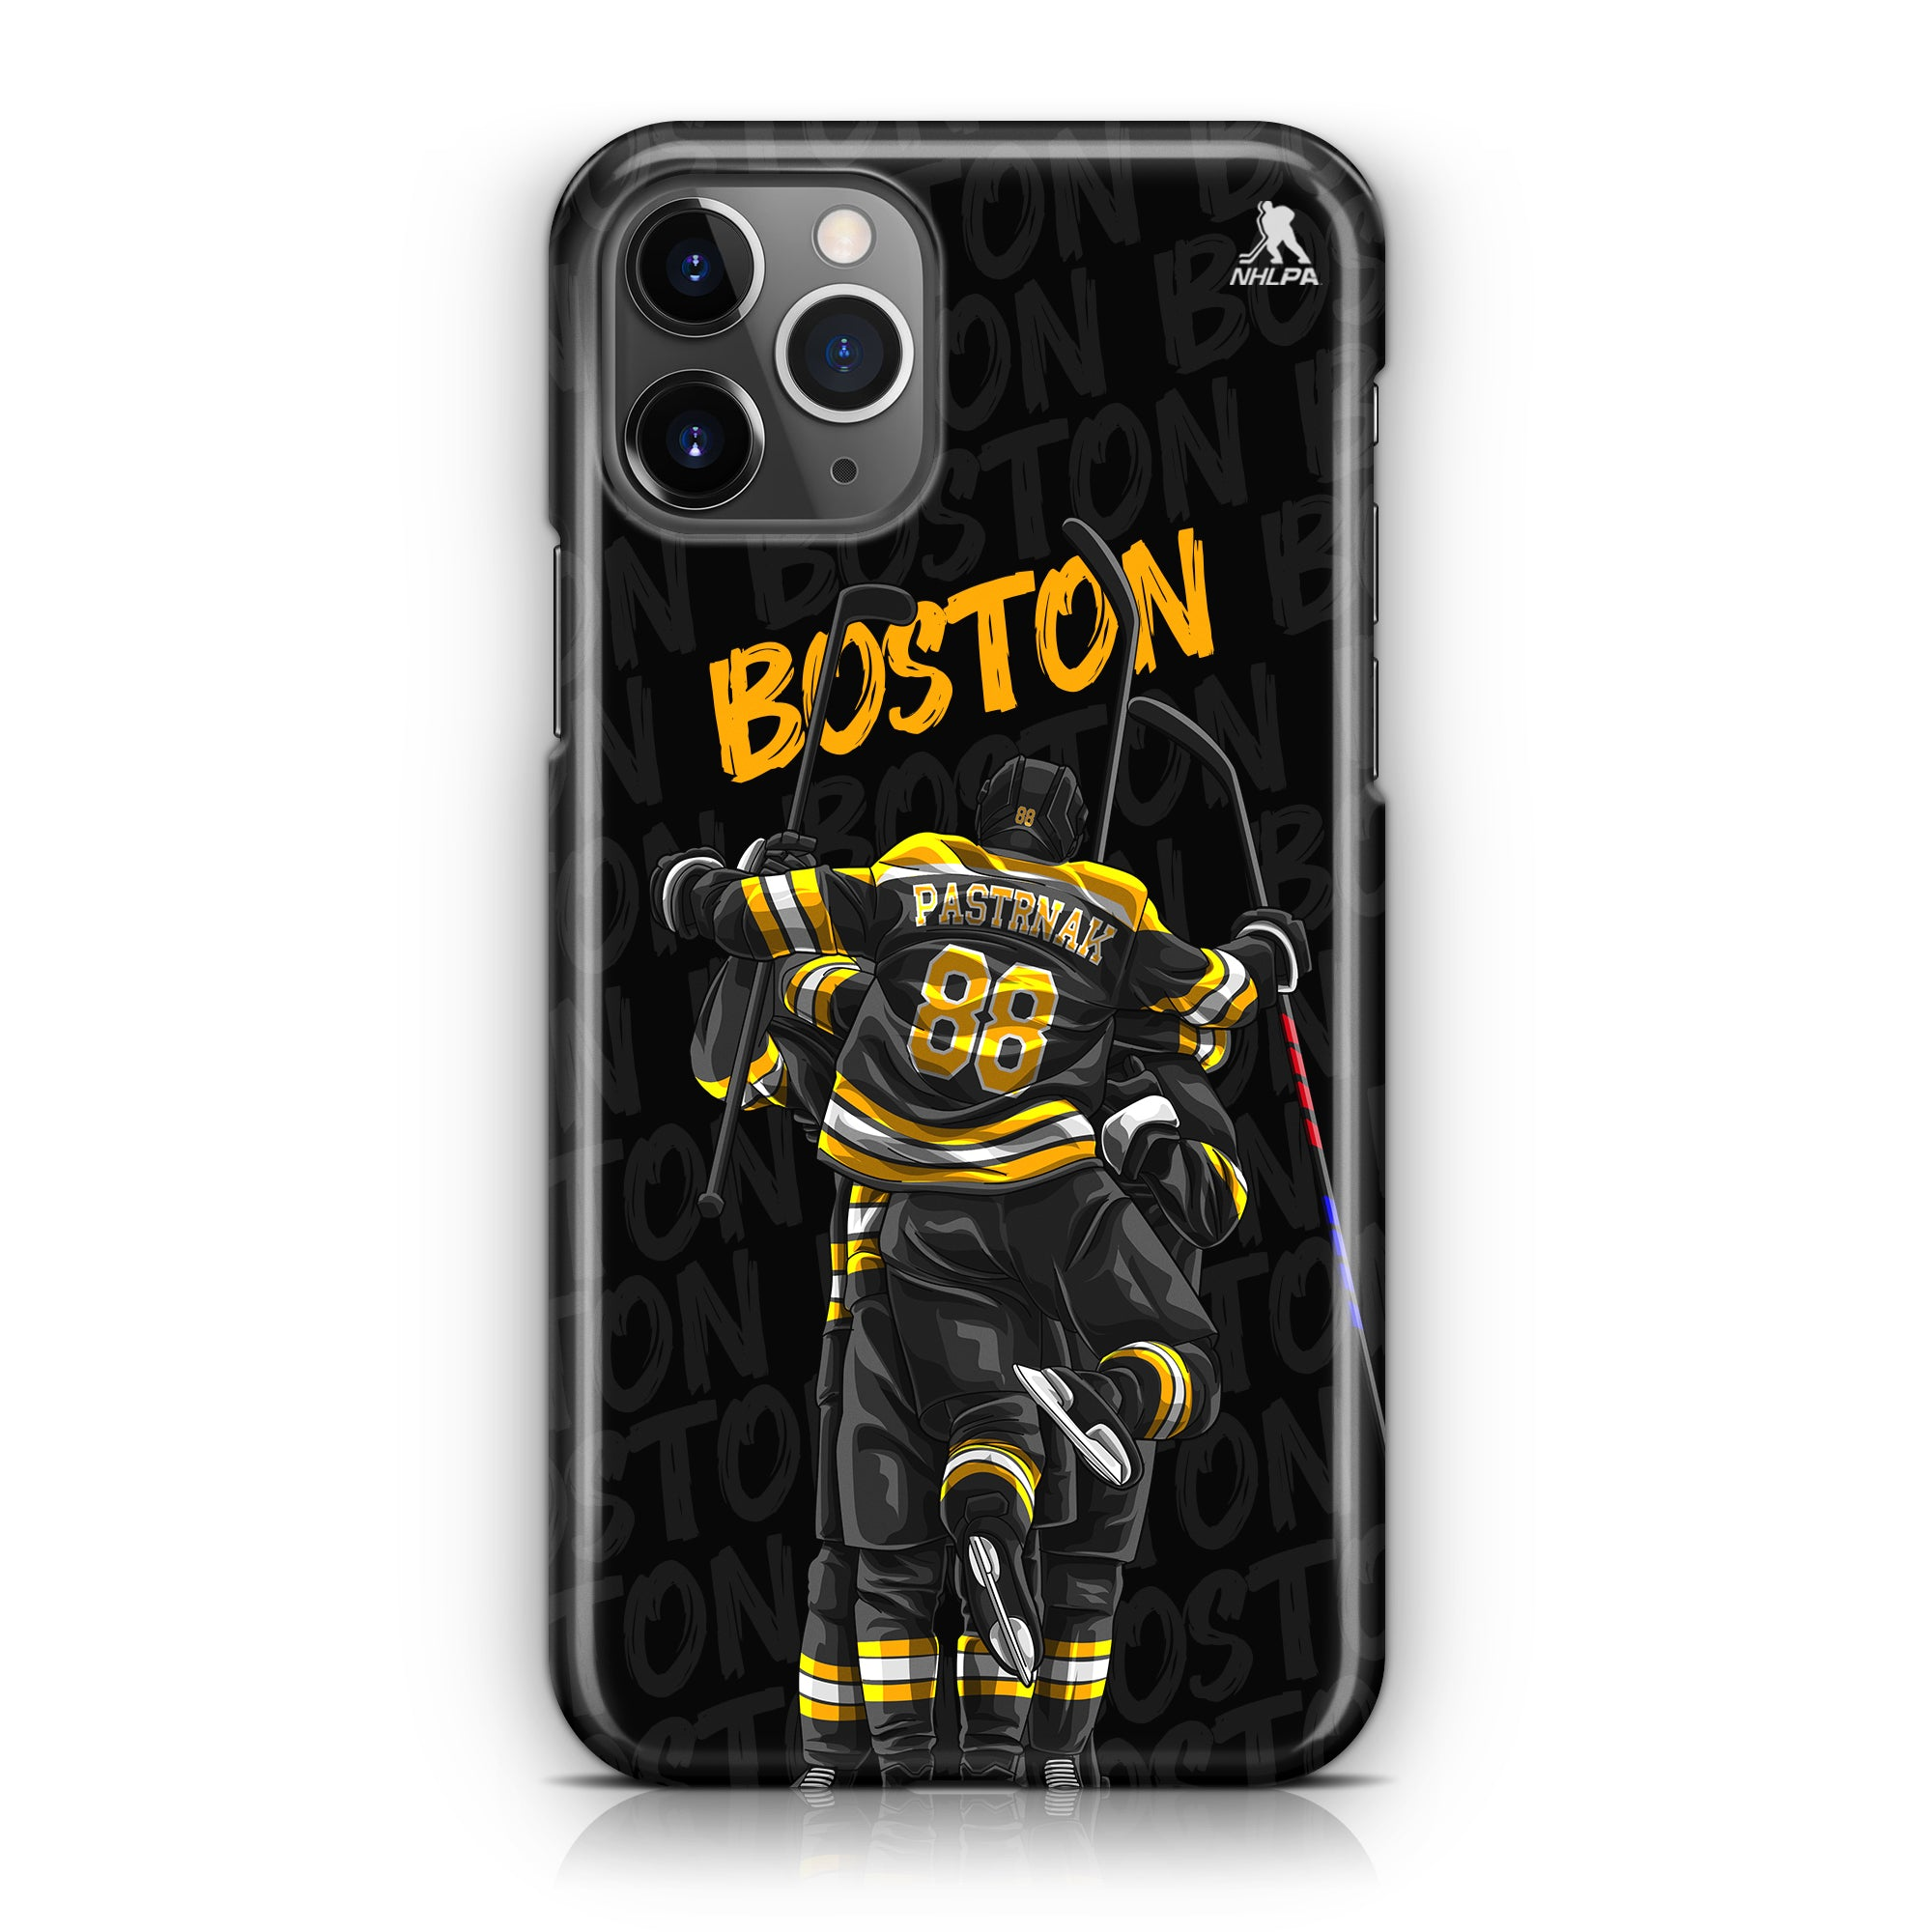 Pastrnak Jump Star Series 2.0 Case